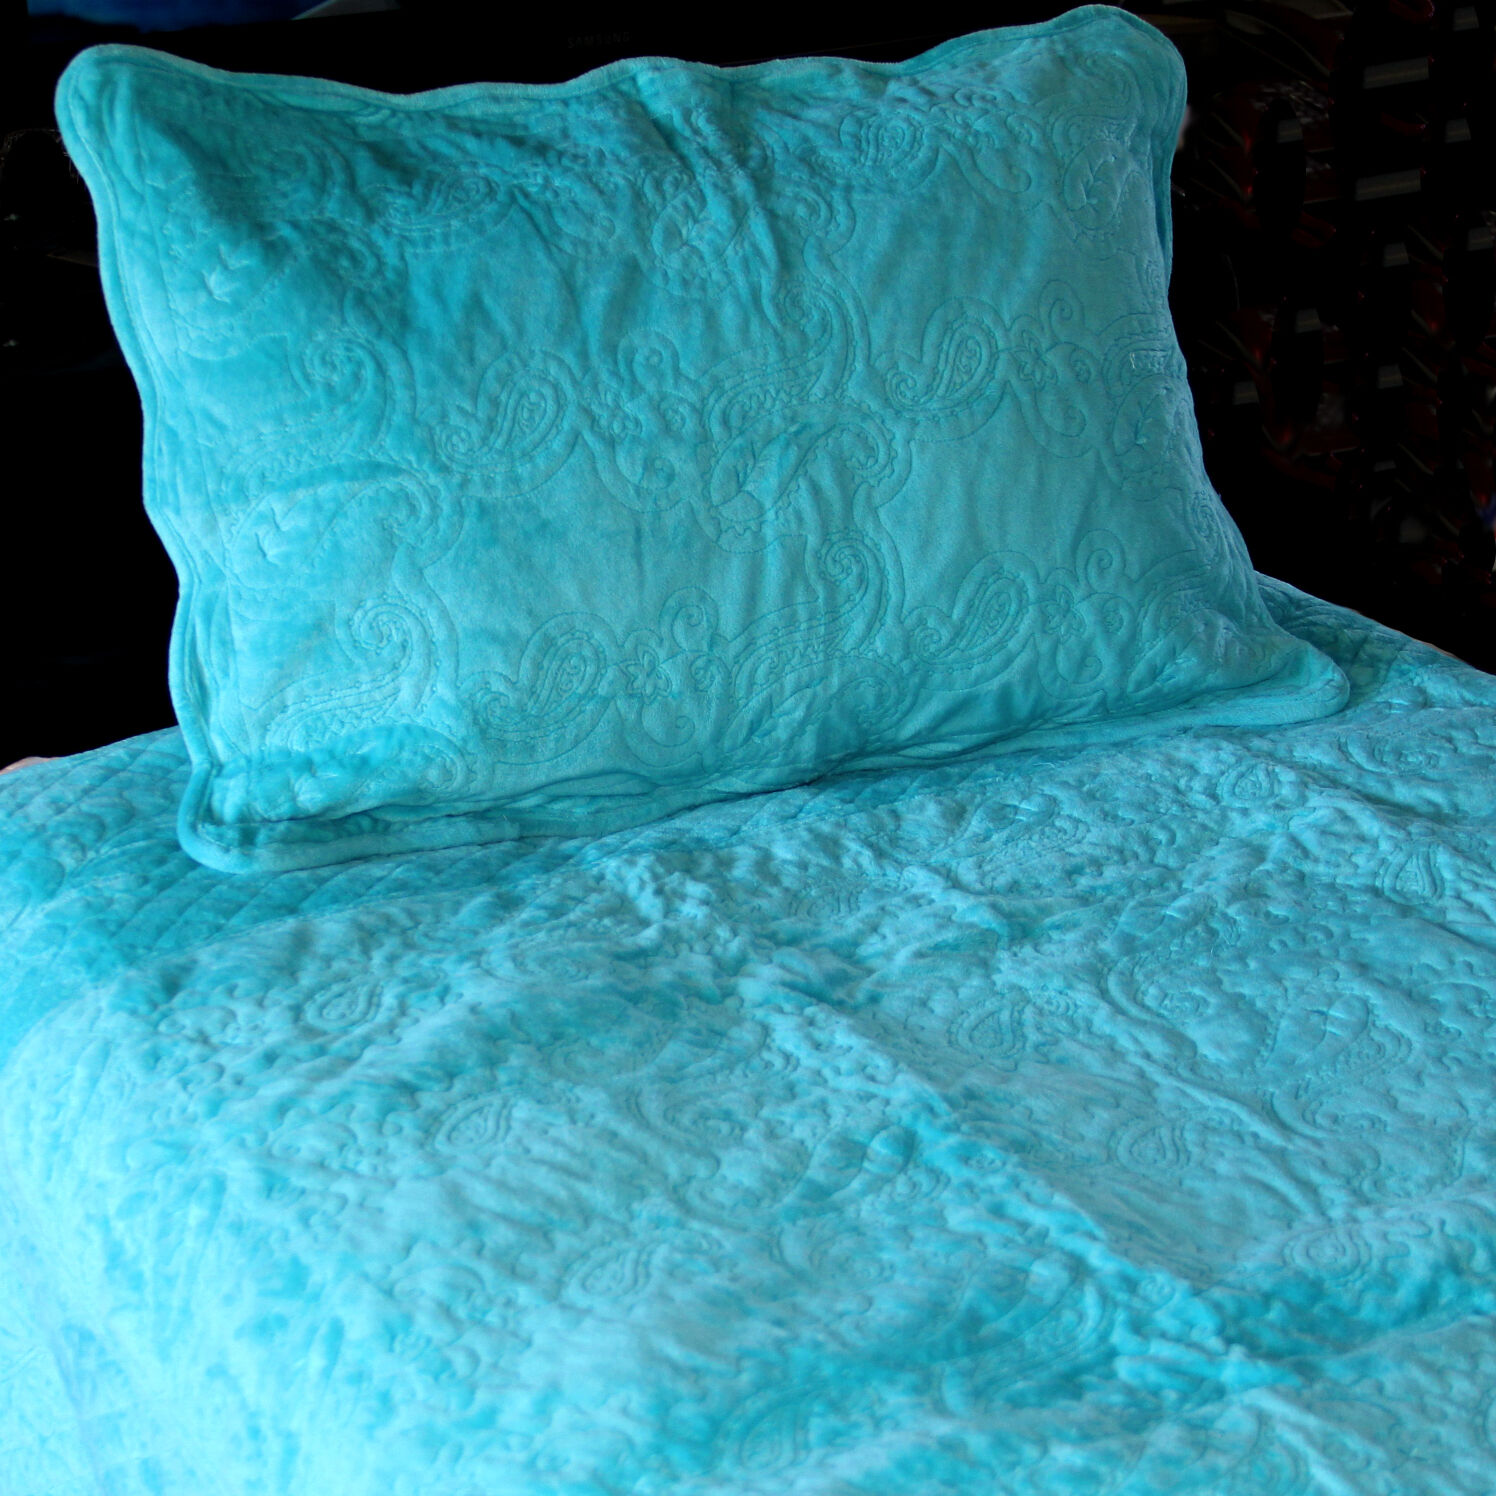 Bedspread Embroiderot Microfiber Quilted Bedspread 3PC Set in Royal Blau Double